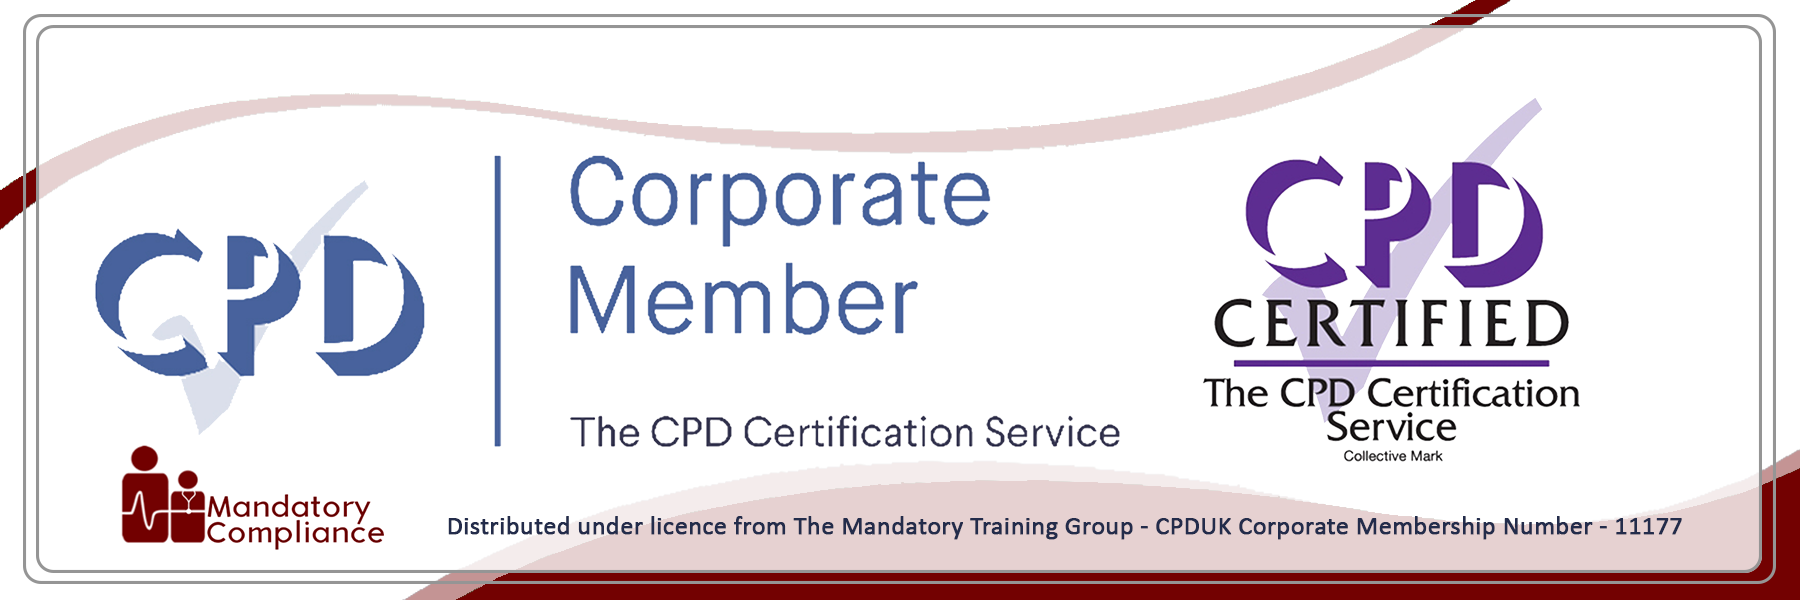 Safeguarding Adults and Children -Online Training Course - The Mandatory Training Group UK -